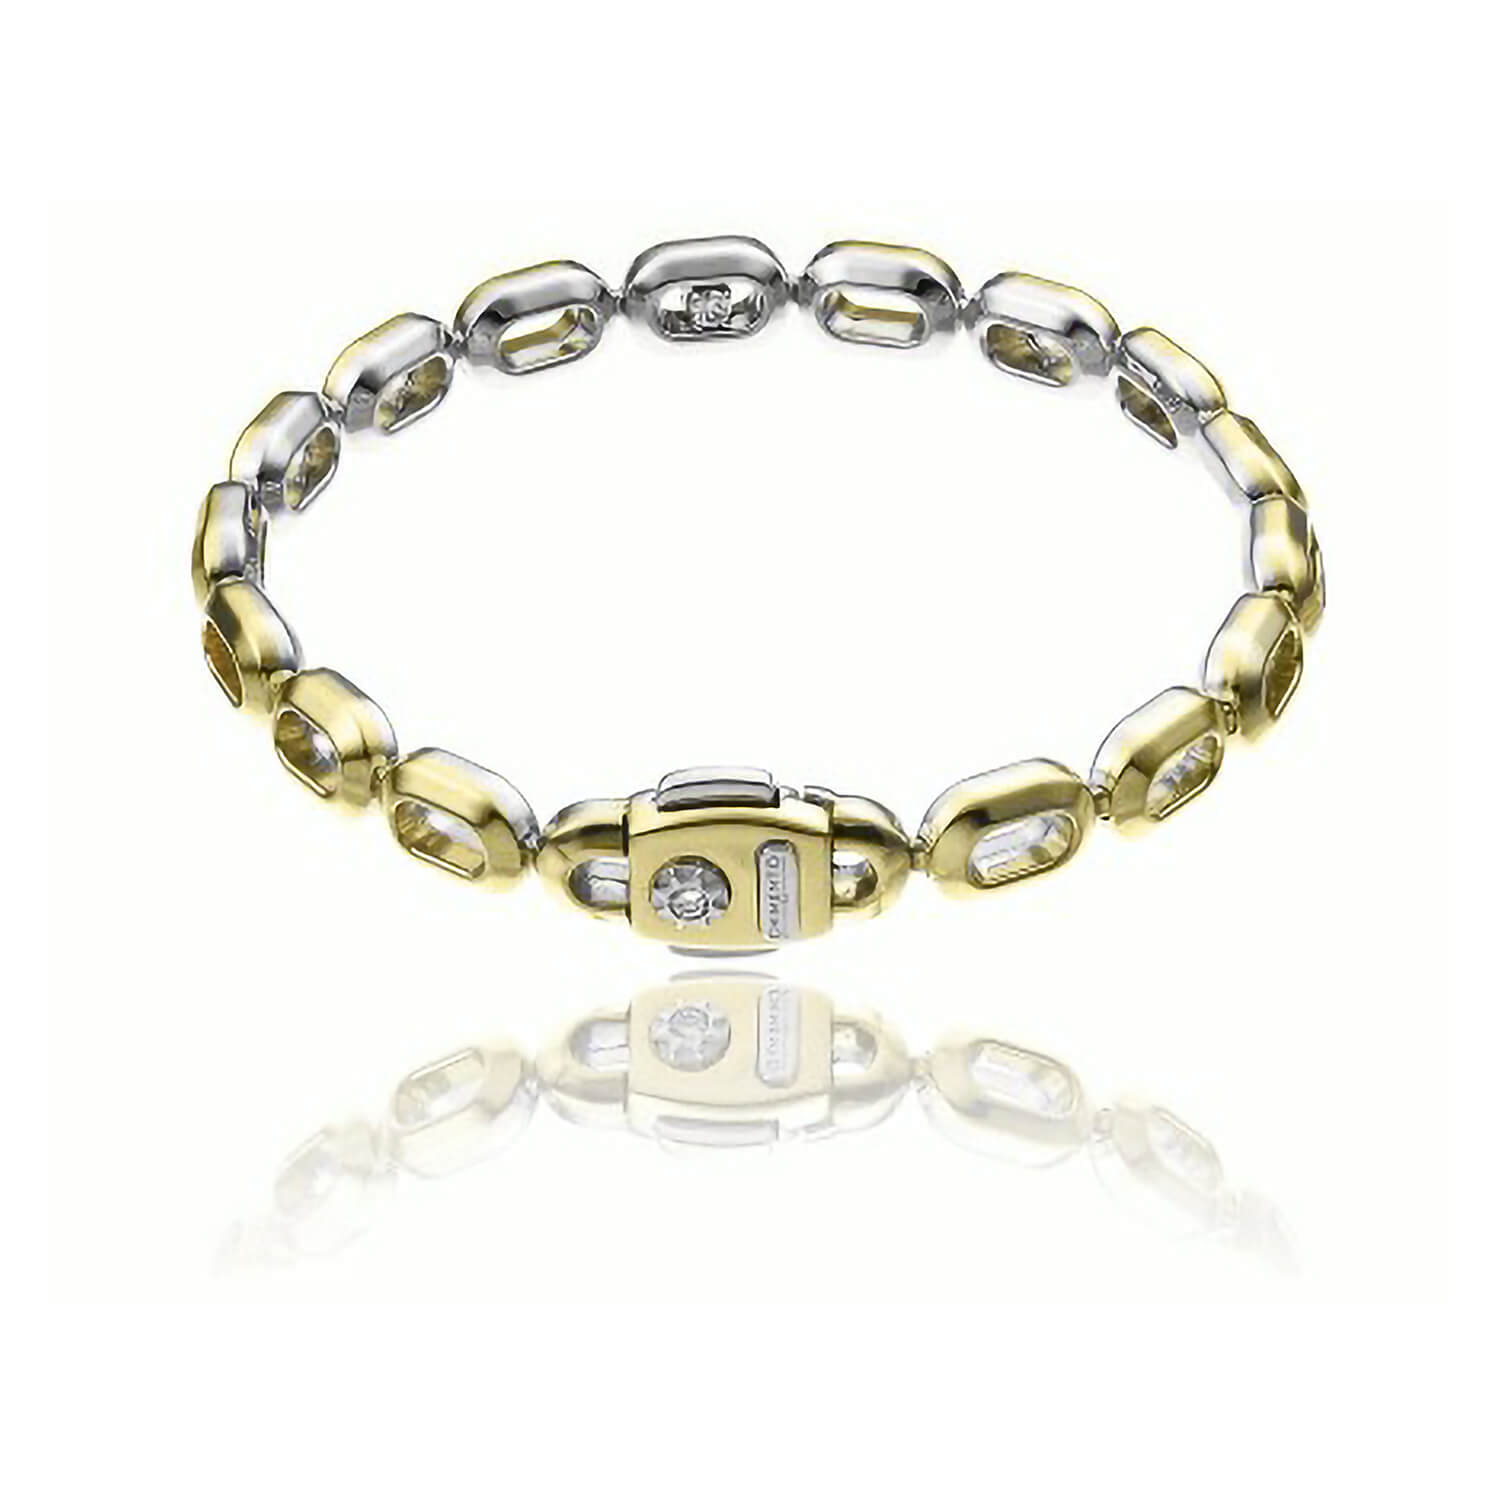 Chimento 18ct Yellow Gold Links Double Optima Bracelet